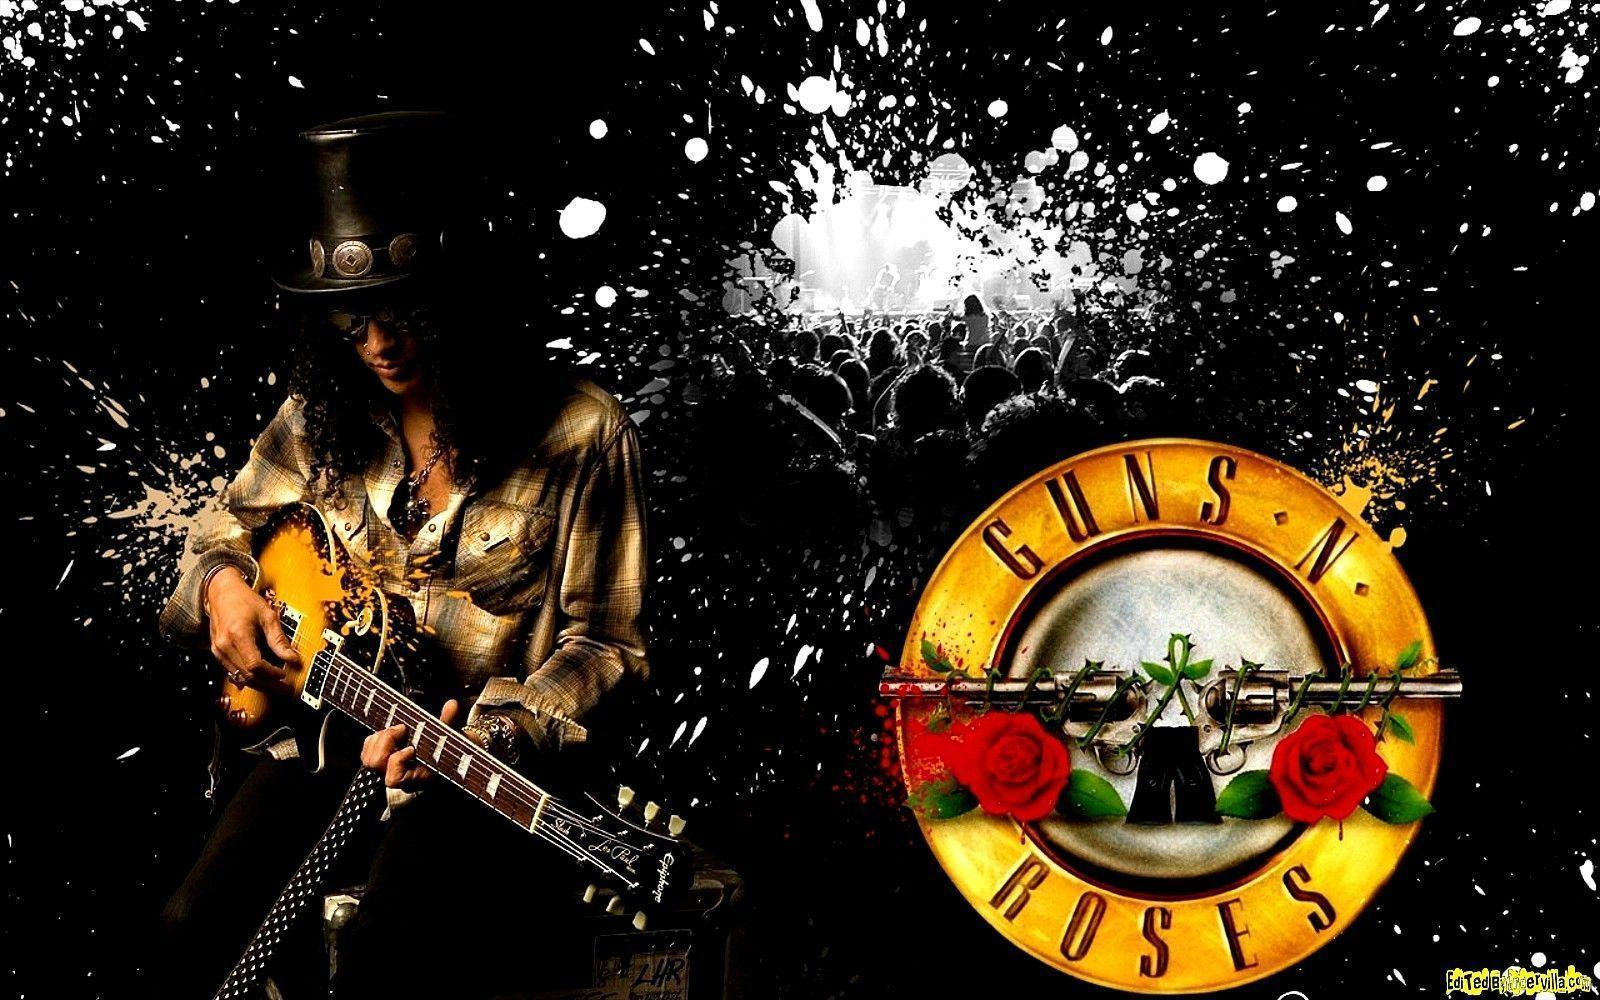 Guns and roses wallpapers wallpaper cave - Wallpaper guns and roses ...